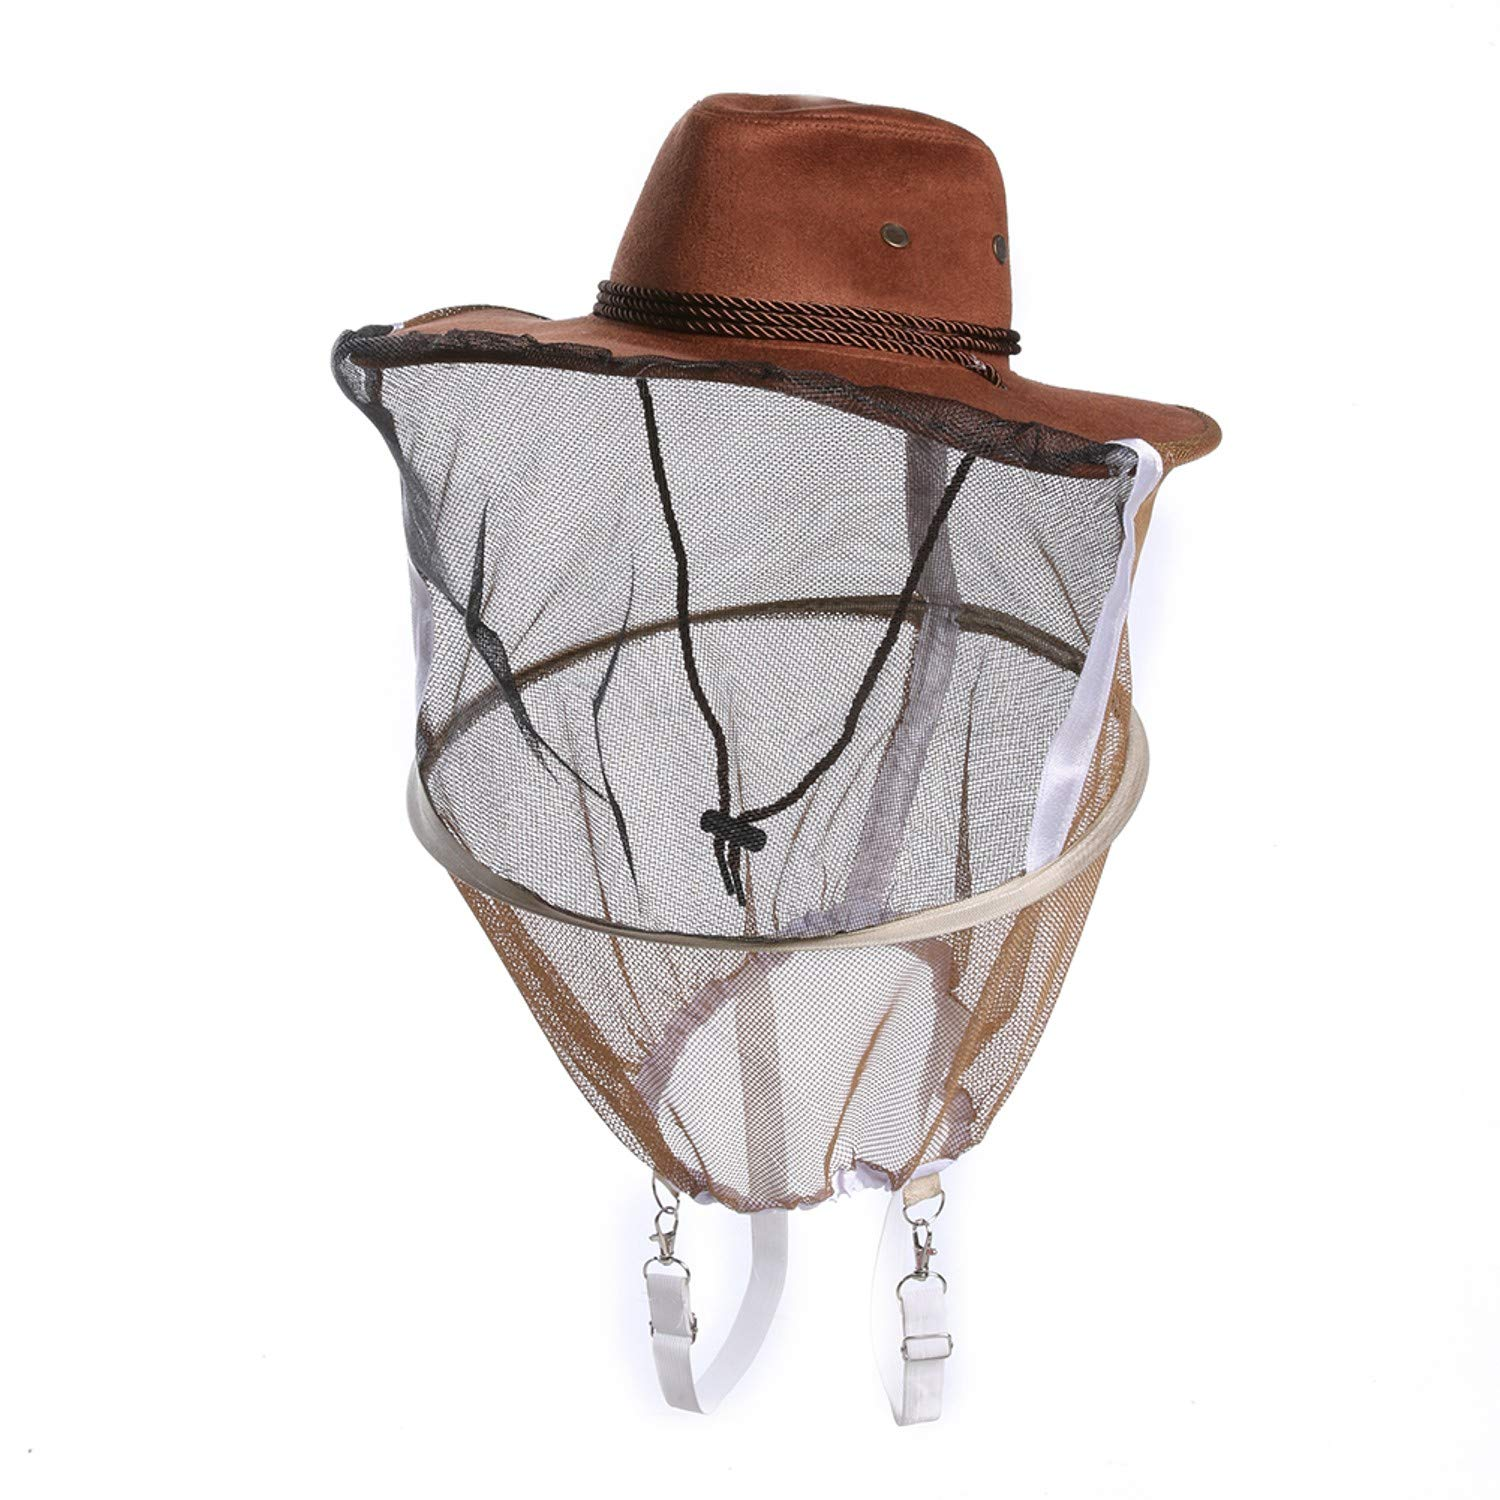 (Set of 1) - Professional Beekeeping Hat Beekeeper Cowboy Hat Anti Mosquito Bee Insect Veil Net Hat Full Face Neck Wrap Protector - One Size (B)